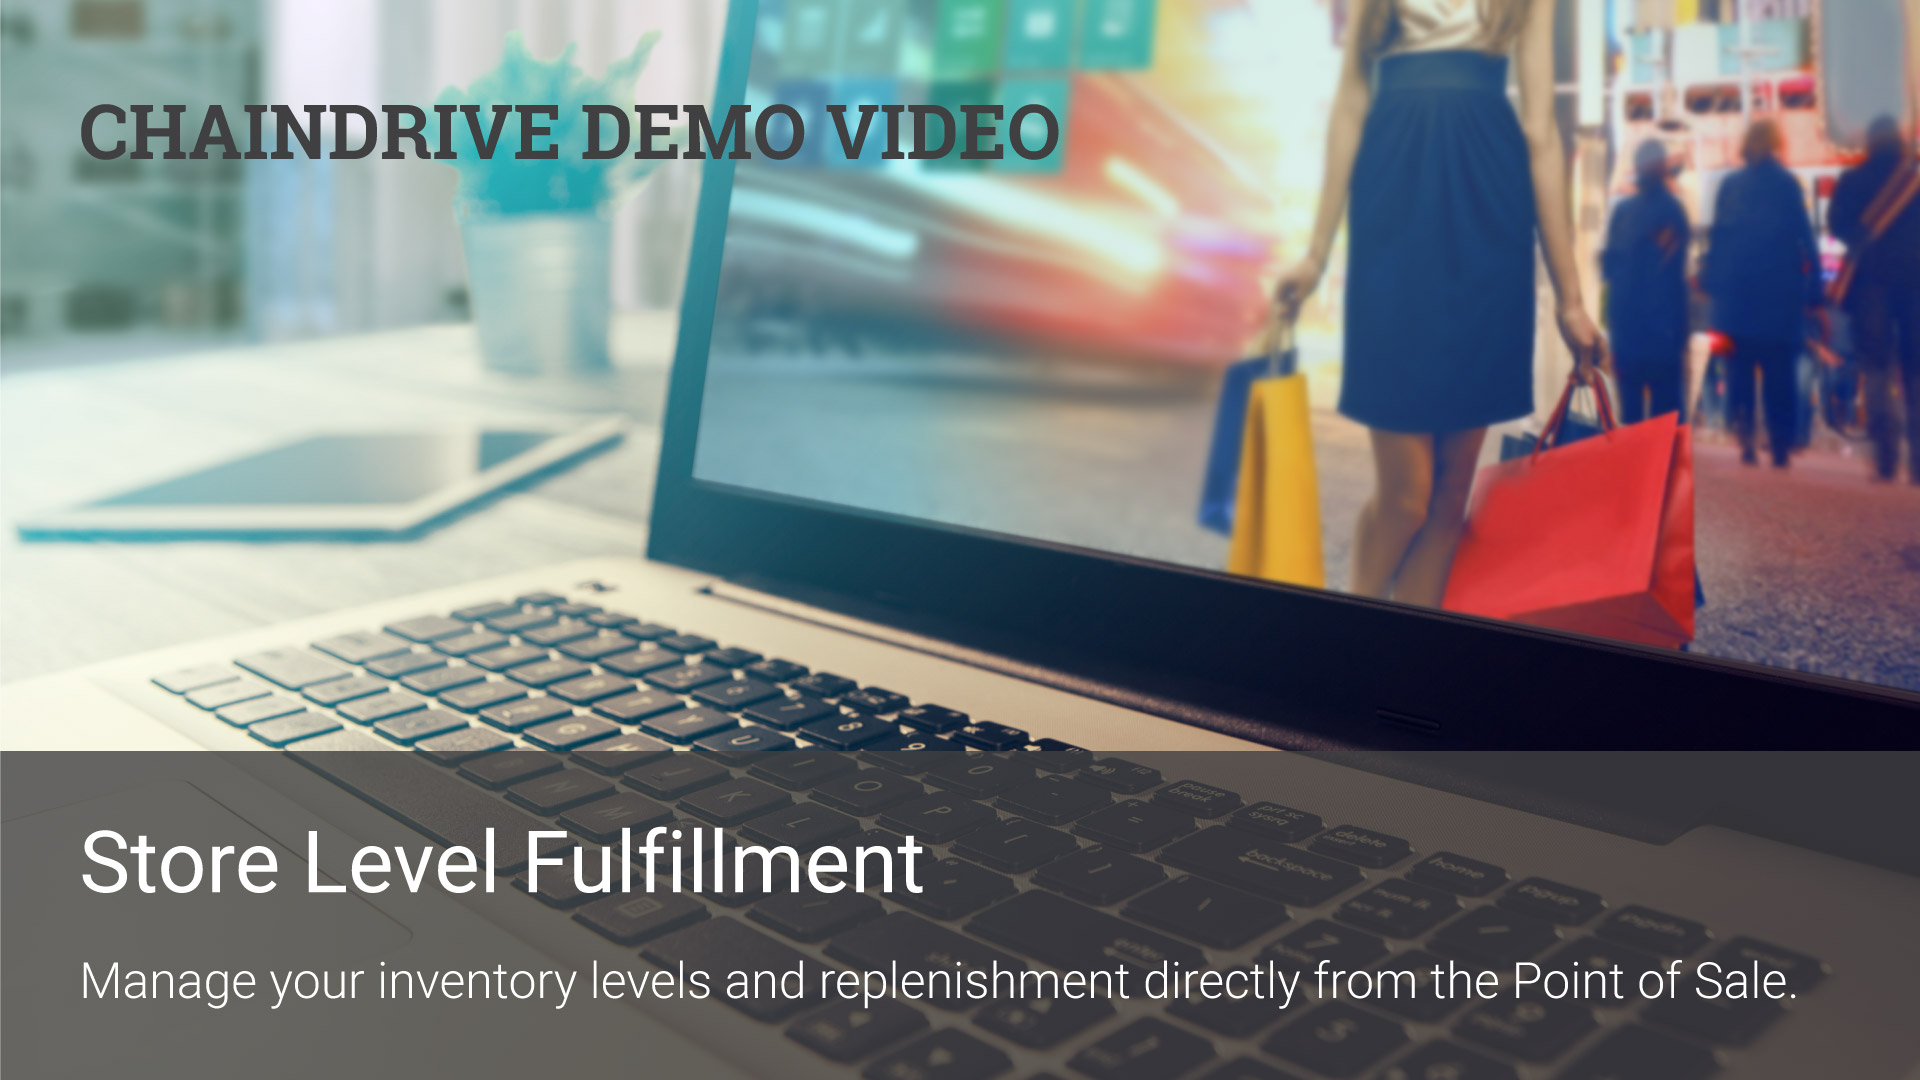 Retail Recources - ChainDrive POS Store Level Fulfillment Demo Video